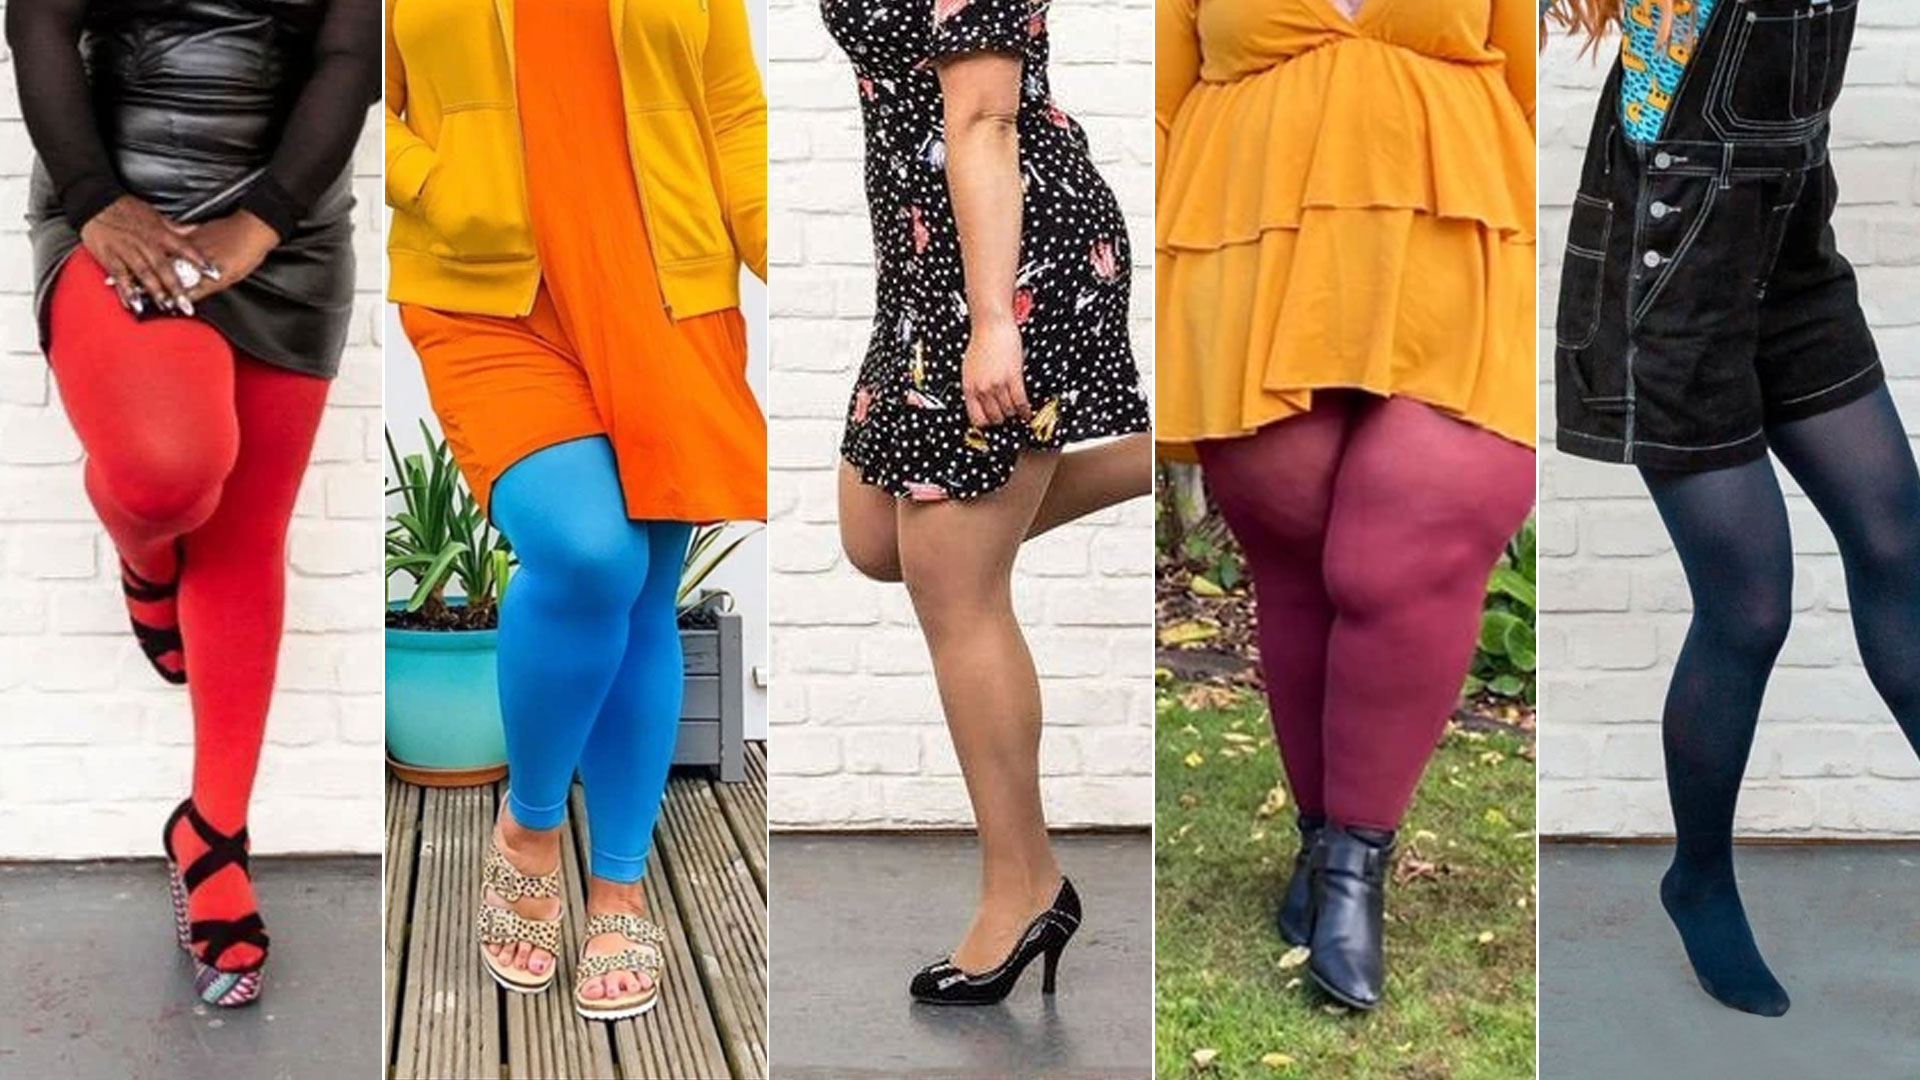 Snag: Marketing Tights For All